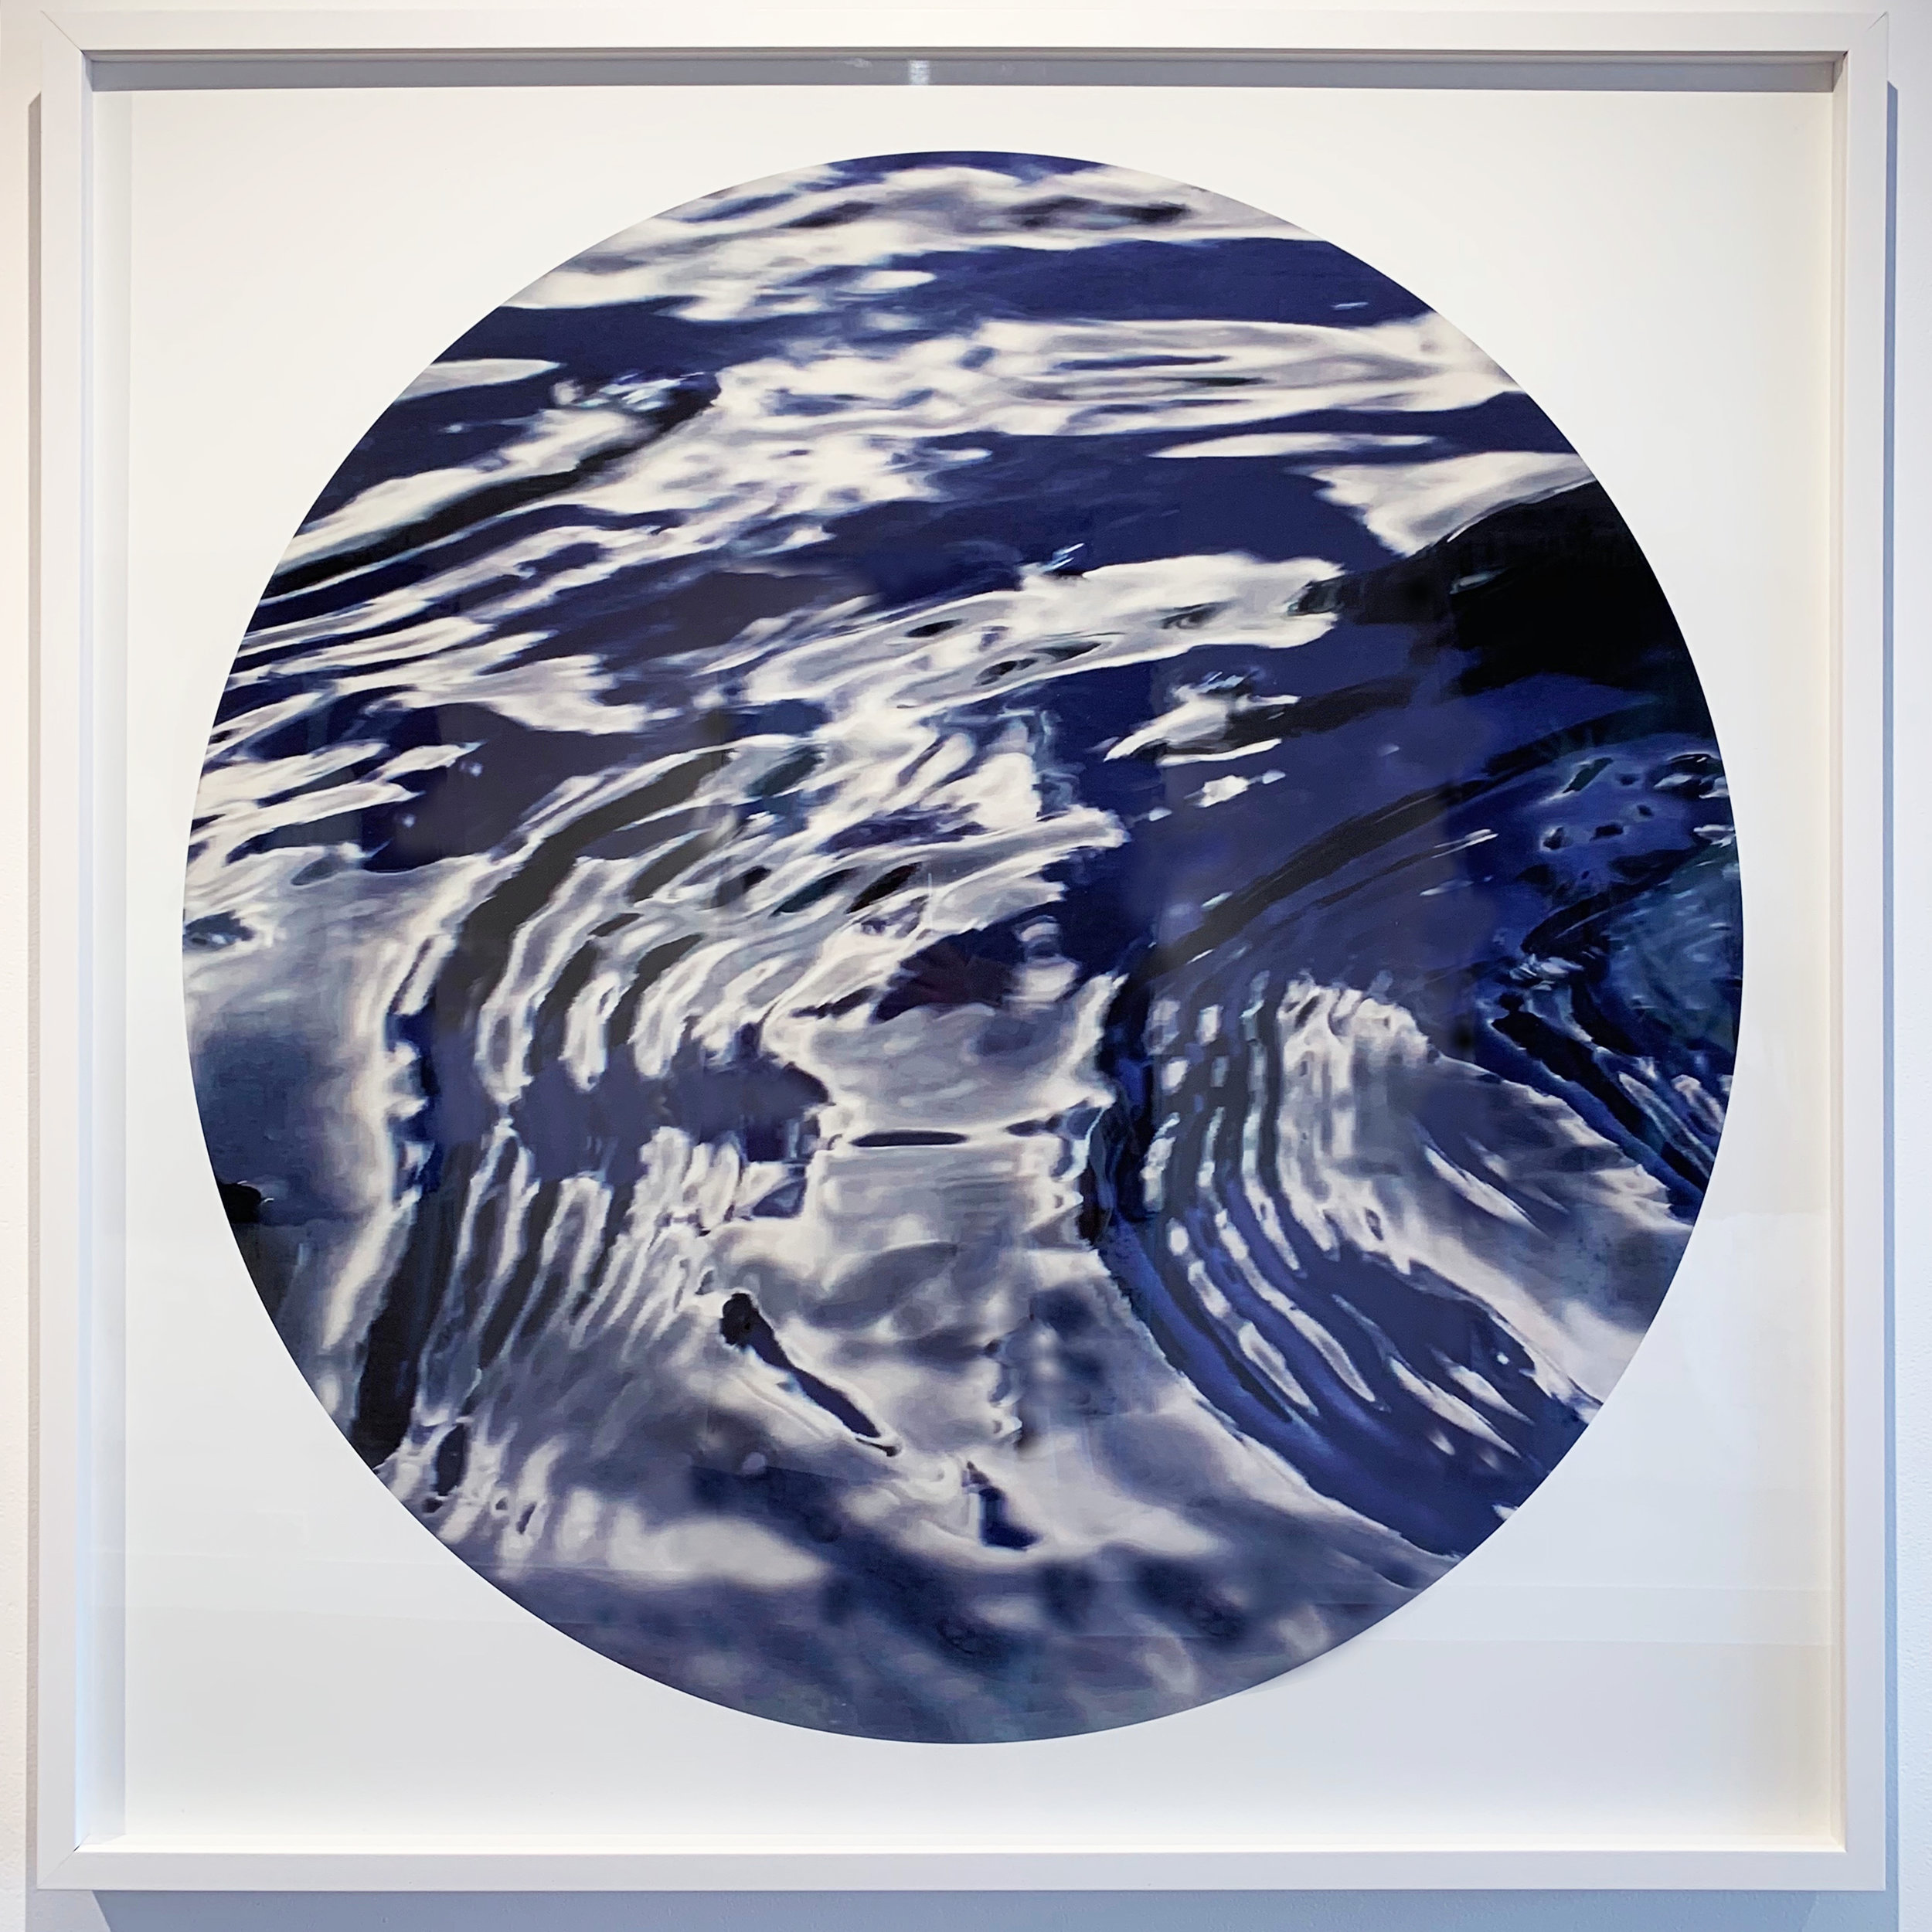 Pieces of Indigo Revealed  #2, 2019, digital print on archival rag paper, framed 90x90cm